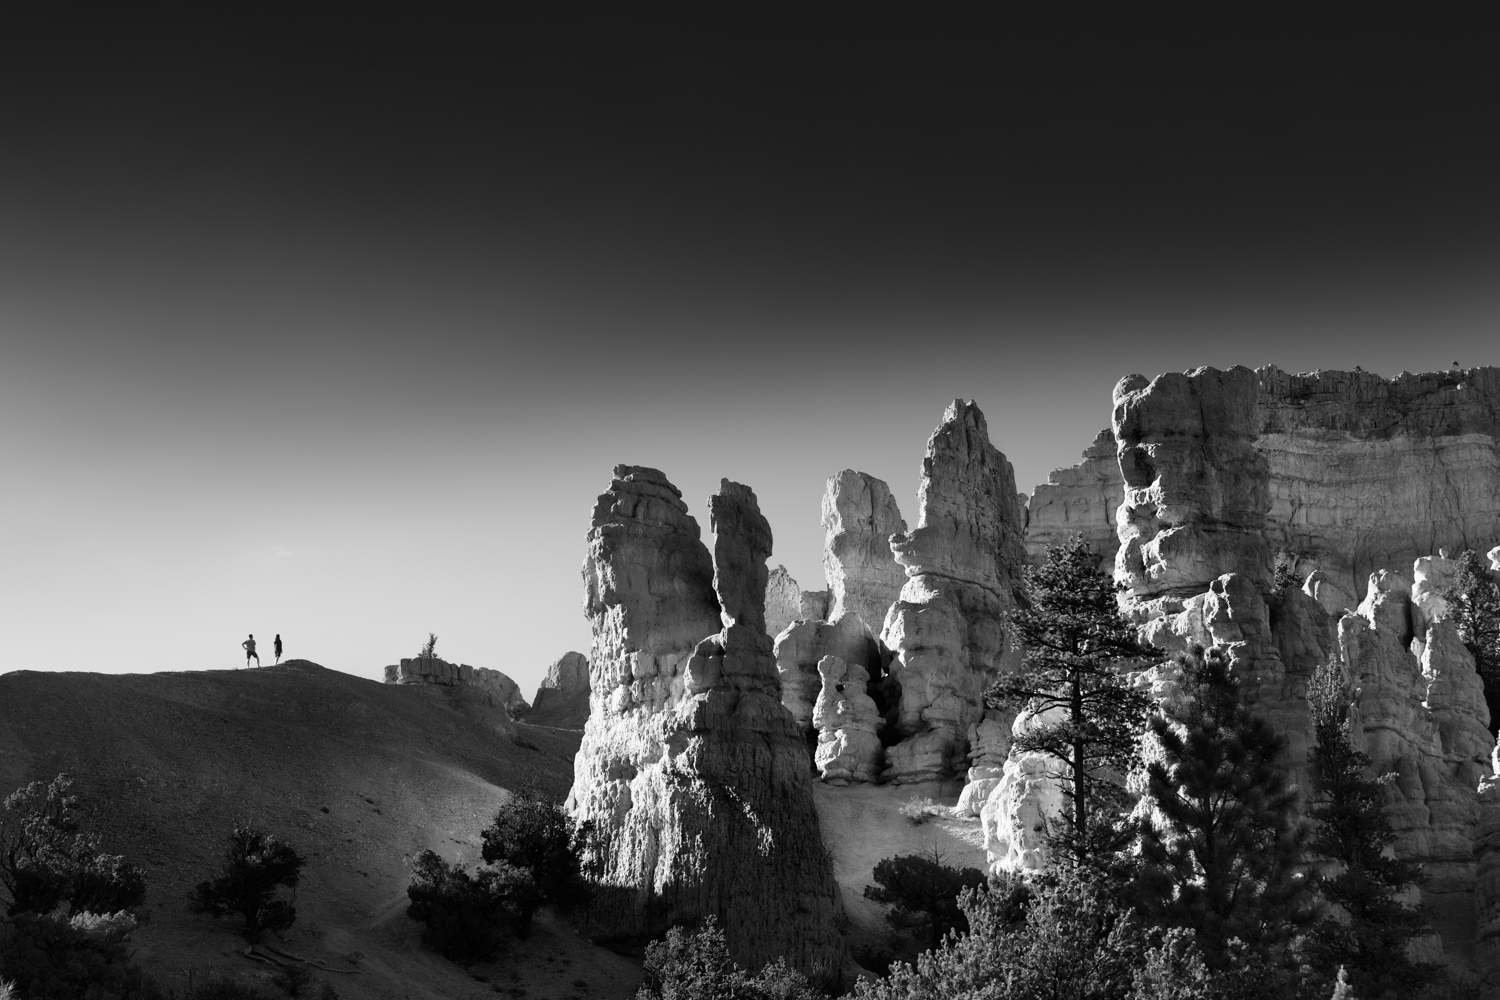 Fotografare il Bryce Canyon www.ishoottravels.com your ticket to travel photography. Blog di fotografia di viaggi. © Galli / Trevisan